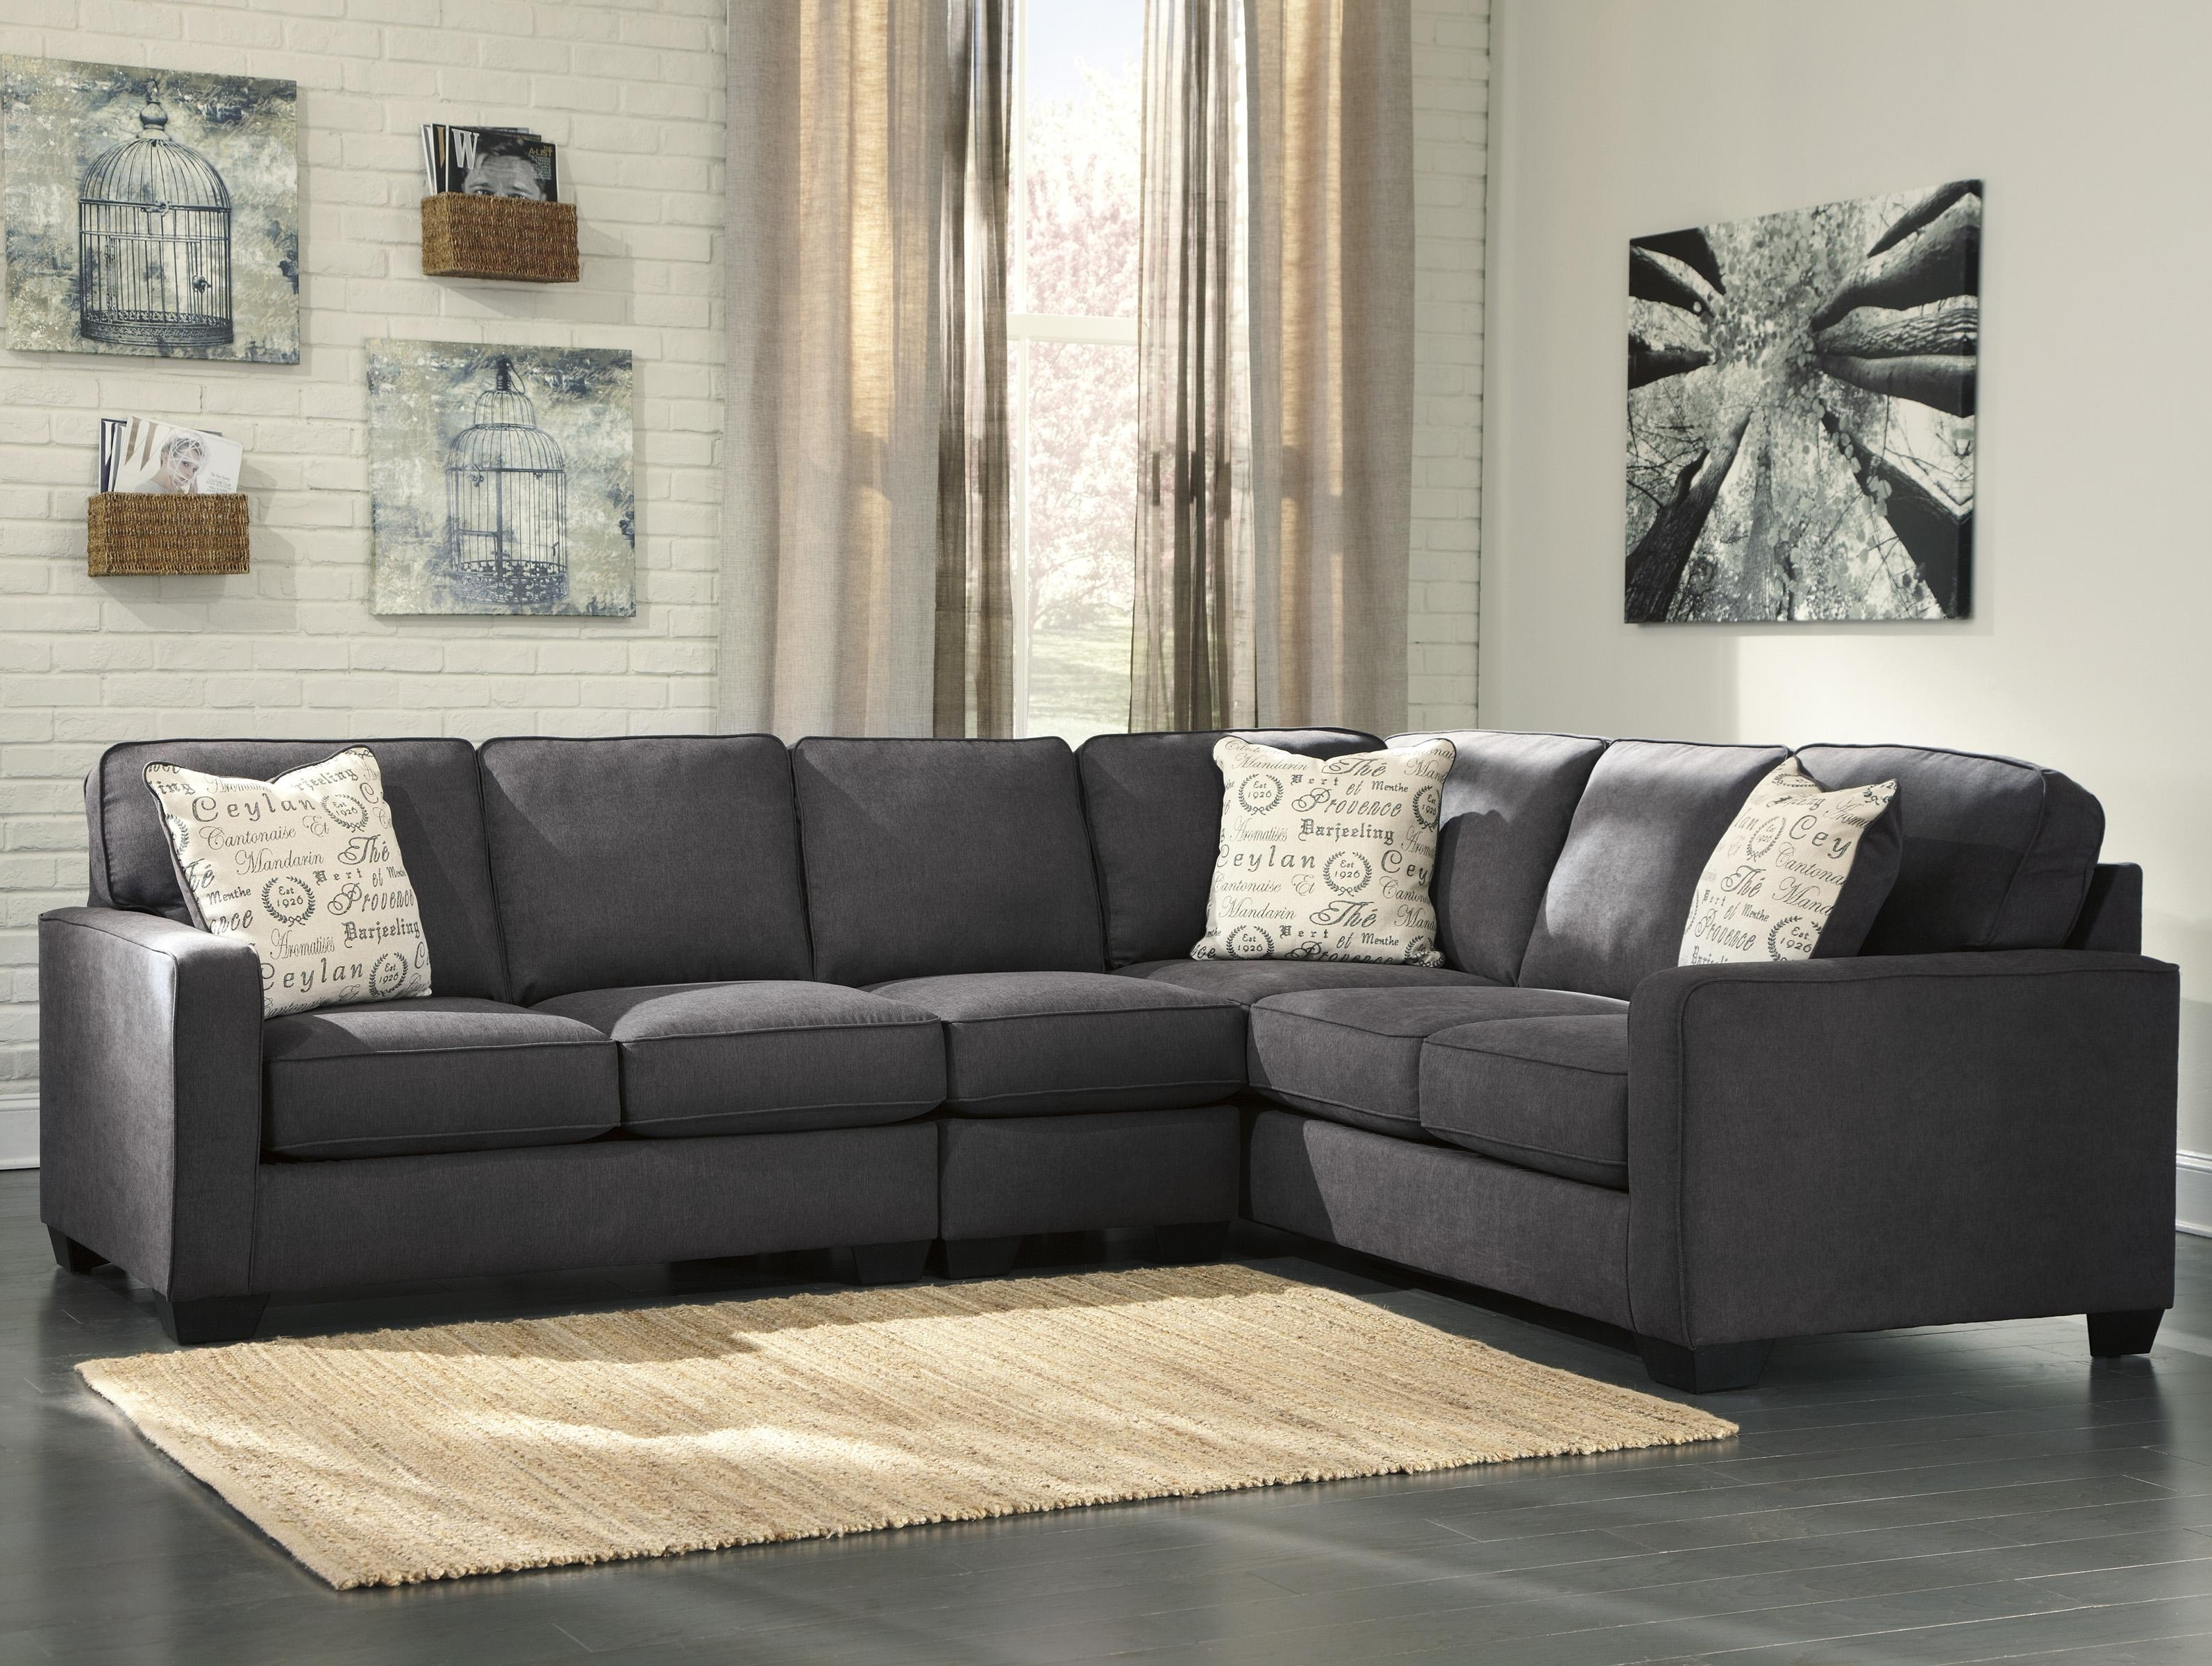 Ashley Signature Design Alenya – Charcoal 3 Piece Sectional With In Well Known Sectional Sofas At Ashley Furniture (View 10 of 15)